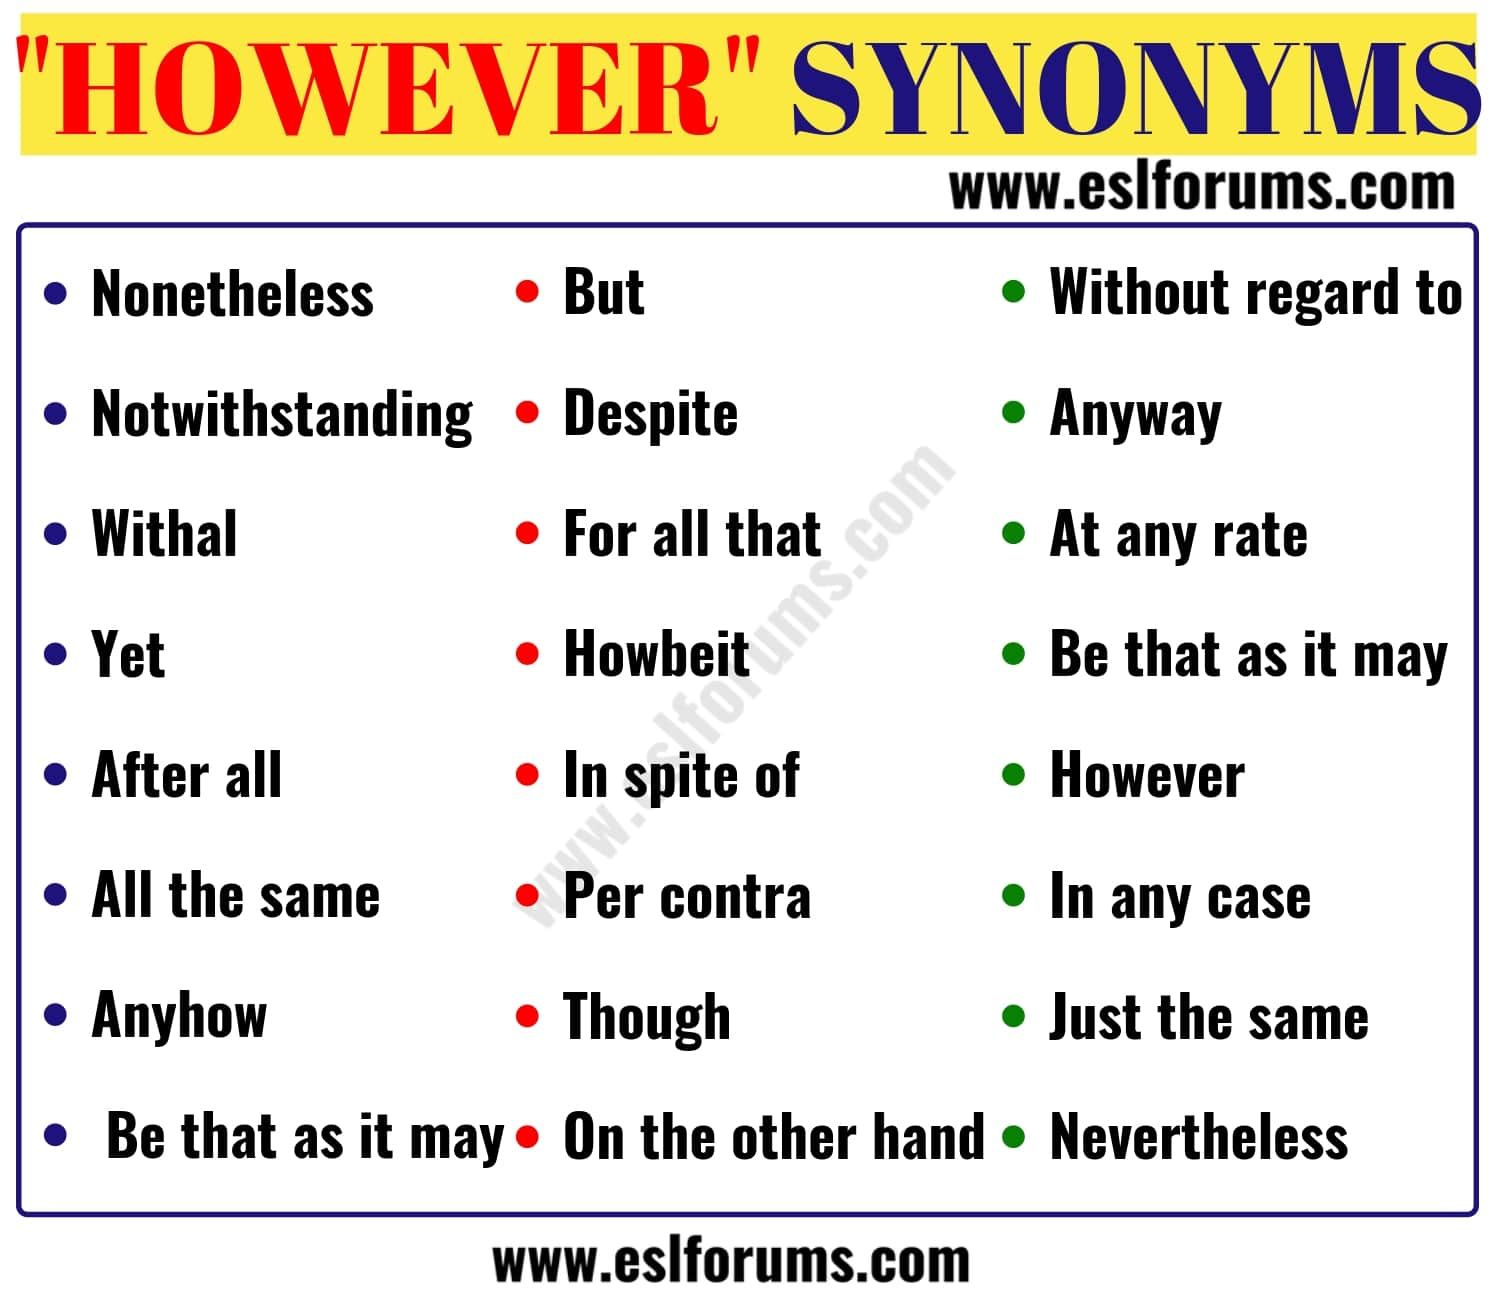 HOWEVER Synonym: 24 Useful Words to Use Instead of HOWEVER - ESL Forums |  Words to use, Learn english words, English vocabulary words